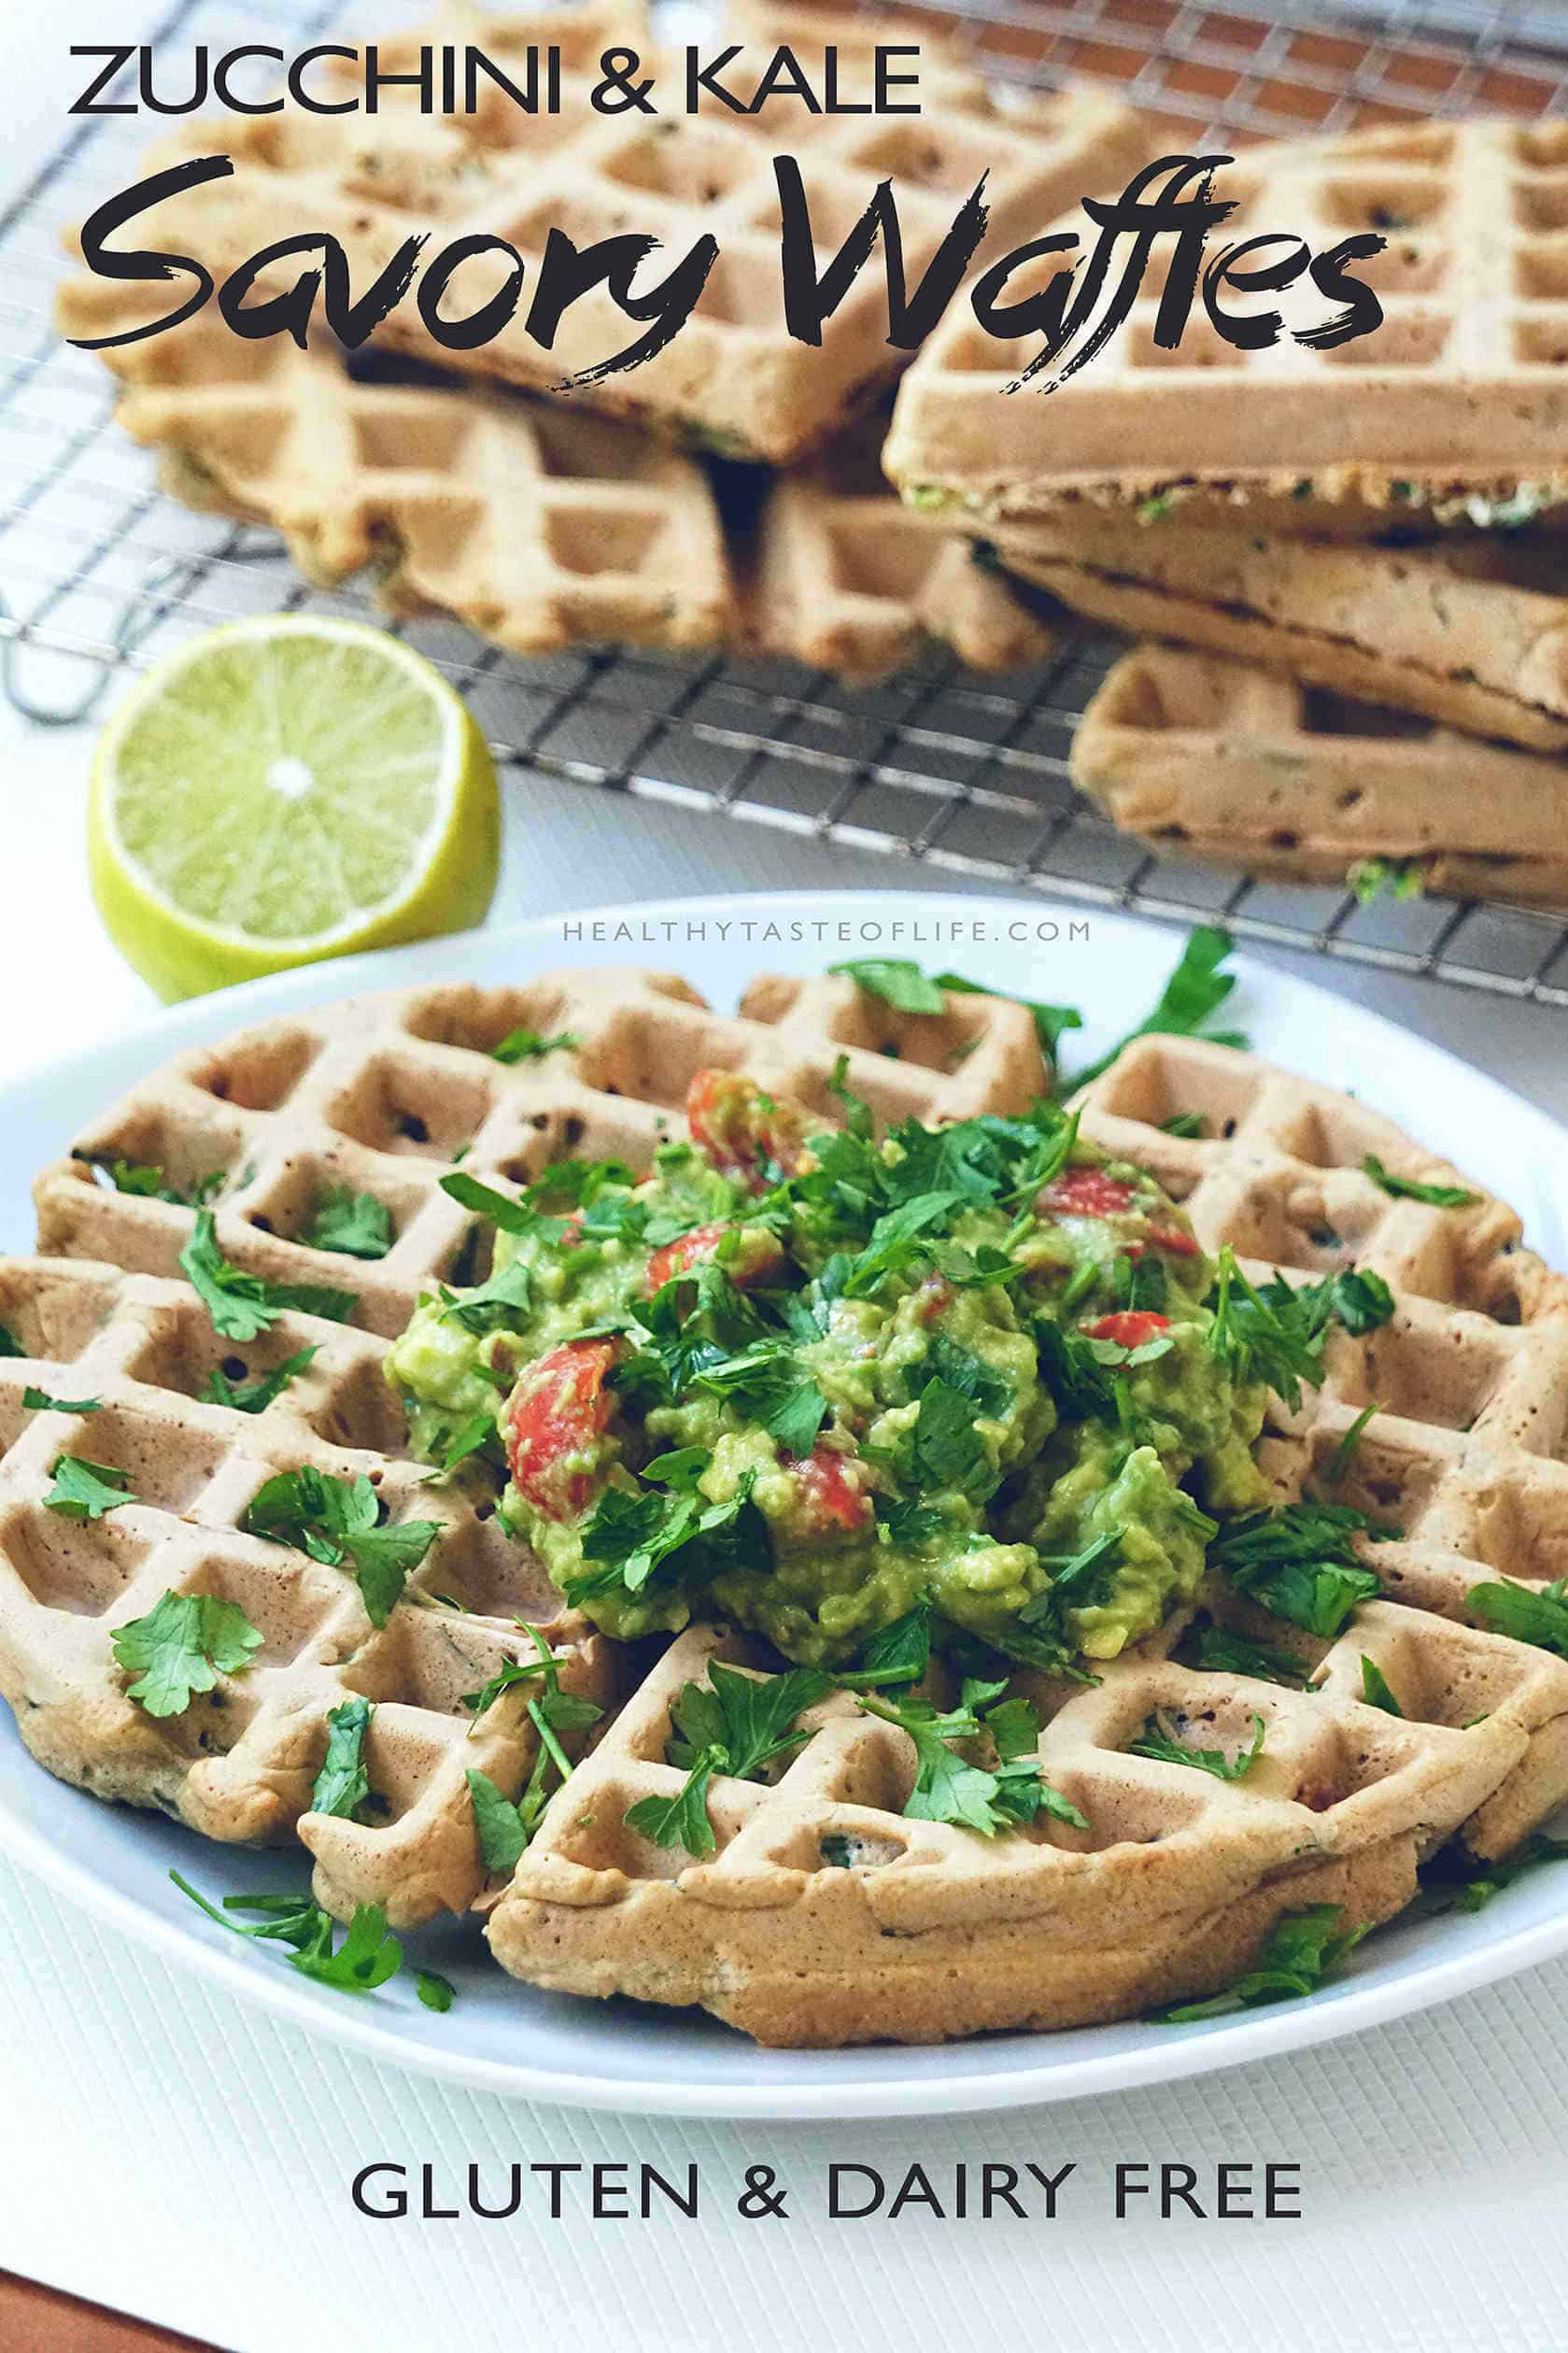 Learn how to make healthy gluten free savory waffles. This savory veggie waffles recipe is great for a clean eating brunch / breakfast or a healthy snack for kids. These waffles are dairy free, gluten free and can be served for lunch or dinner too!